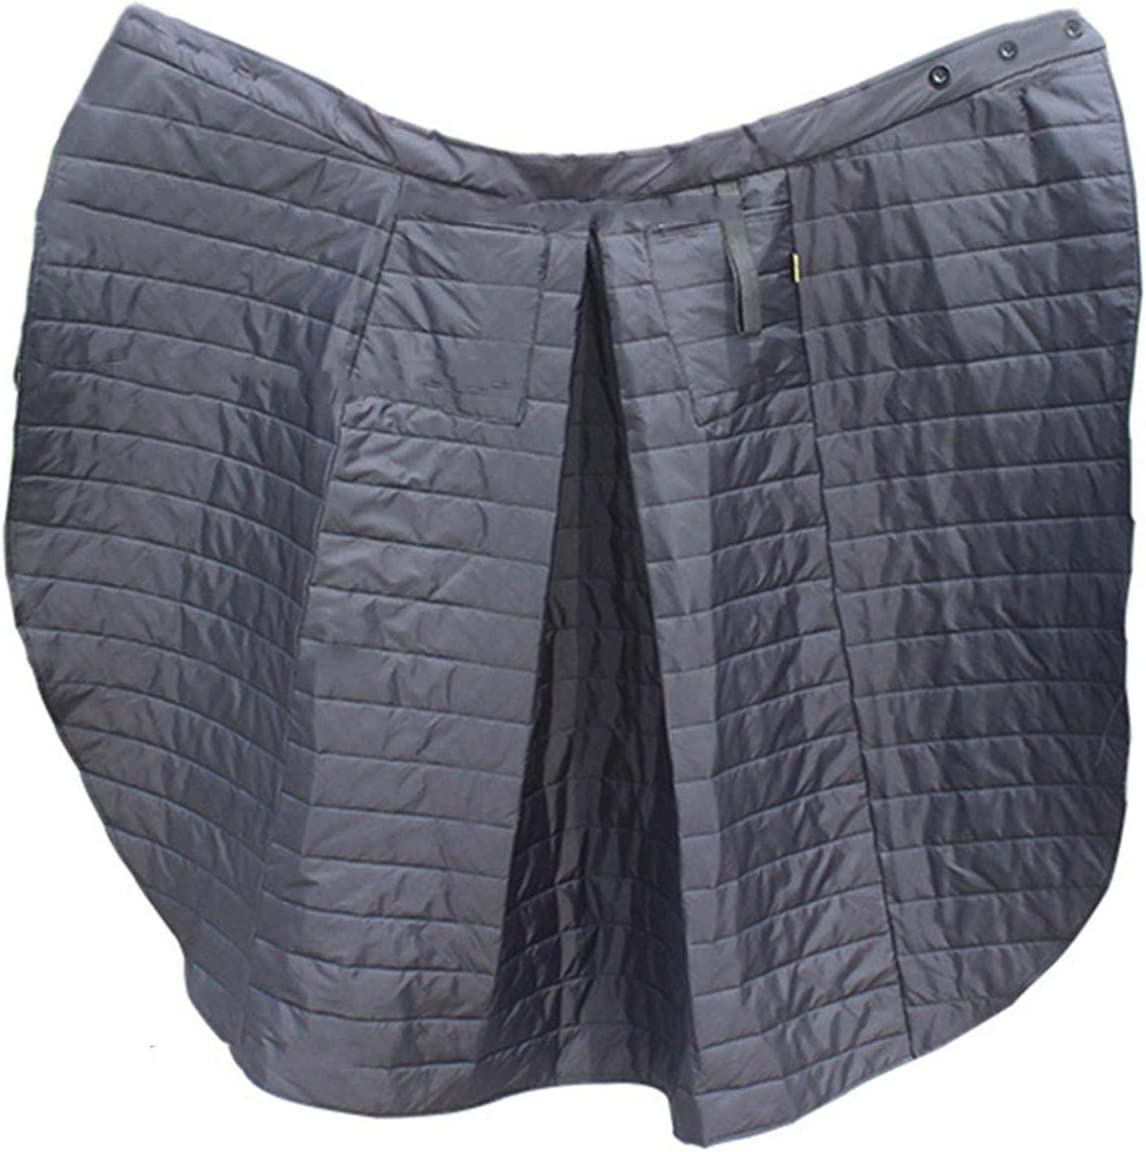 Ridecle Water Resistant Padded Leg Cot Motorcycle Super Special SALE Atlanta Mall held Cosy Windproof